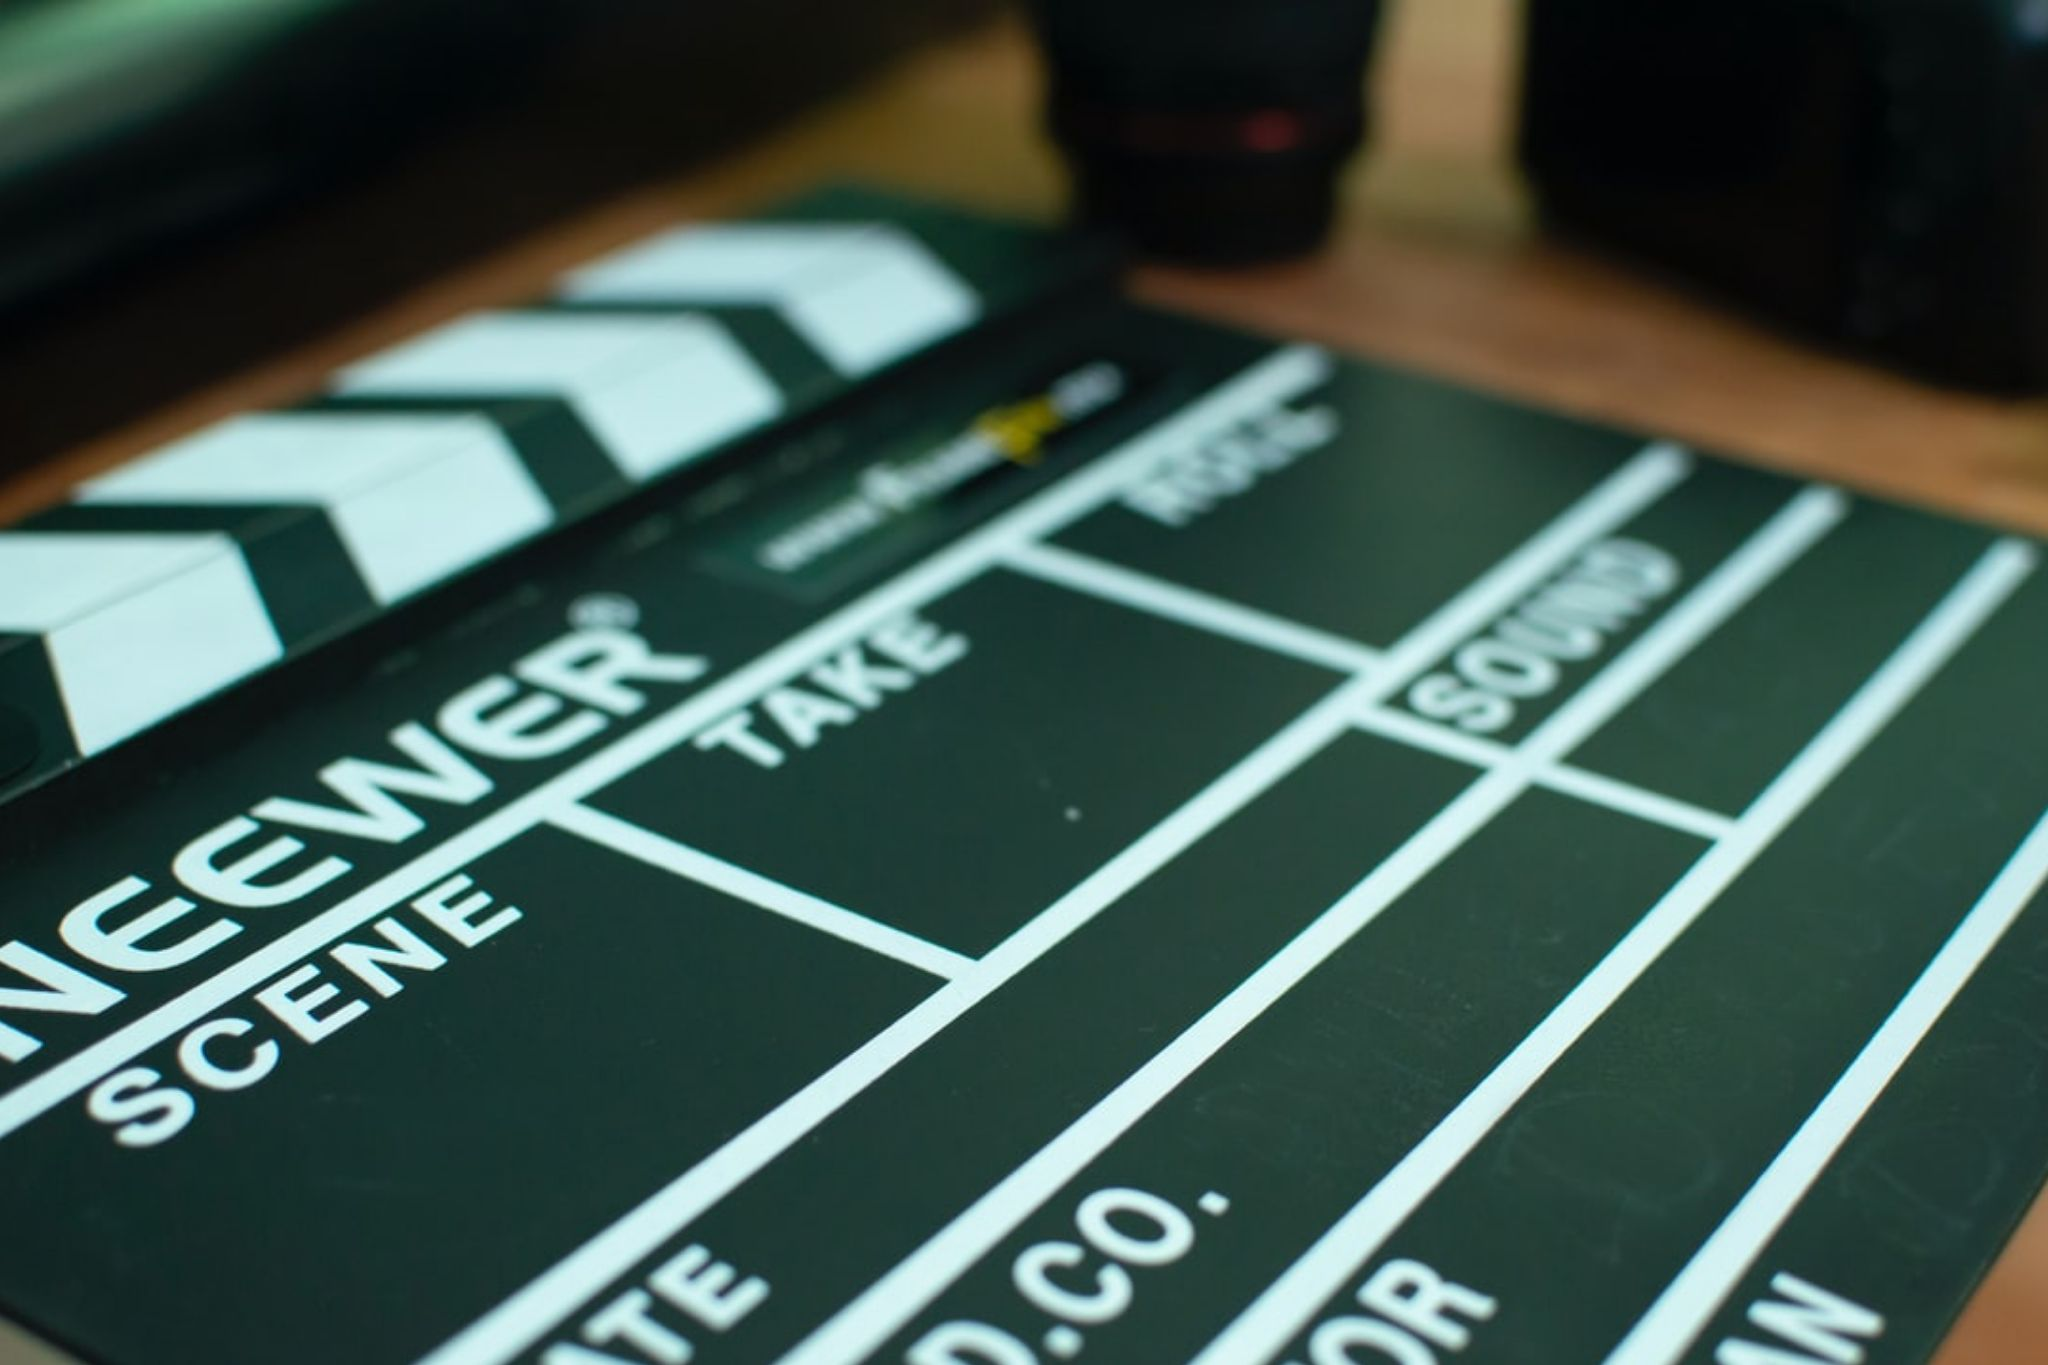 How to Profit from Video in the Cannabis Industry blog post featured image director's clapperboard